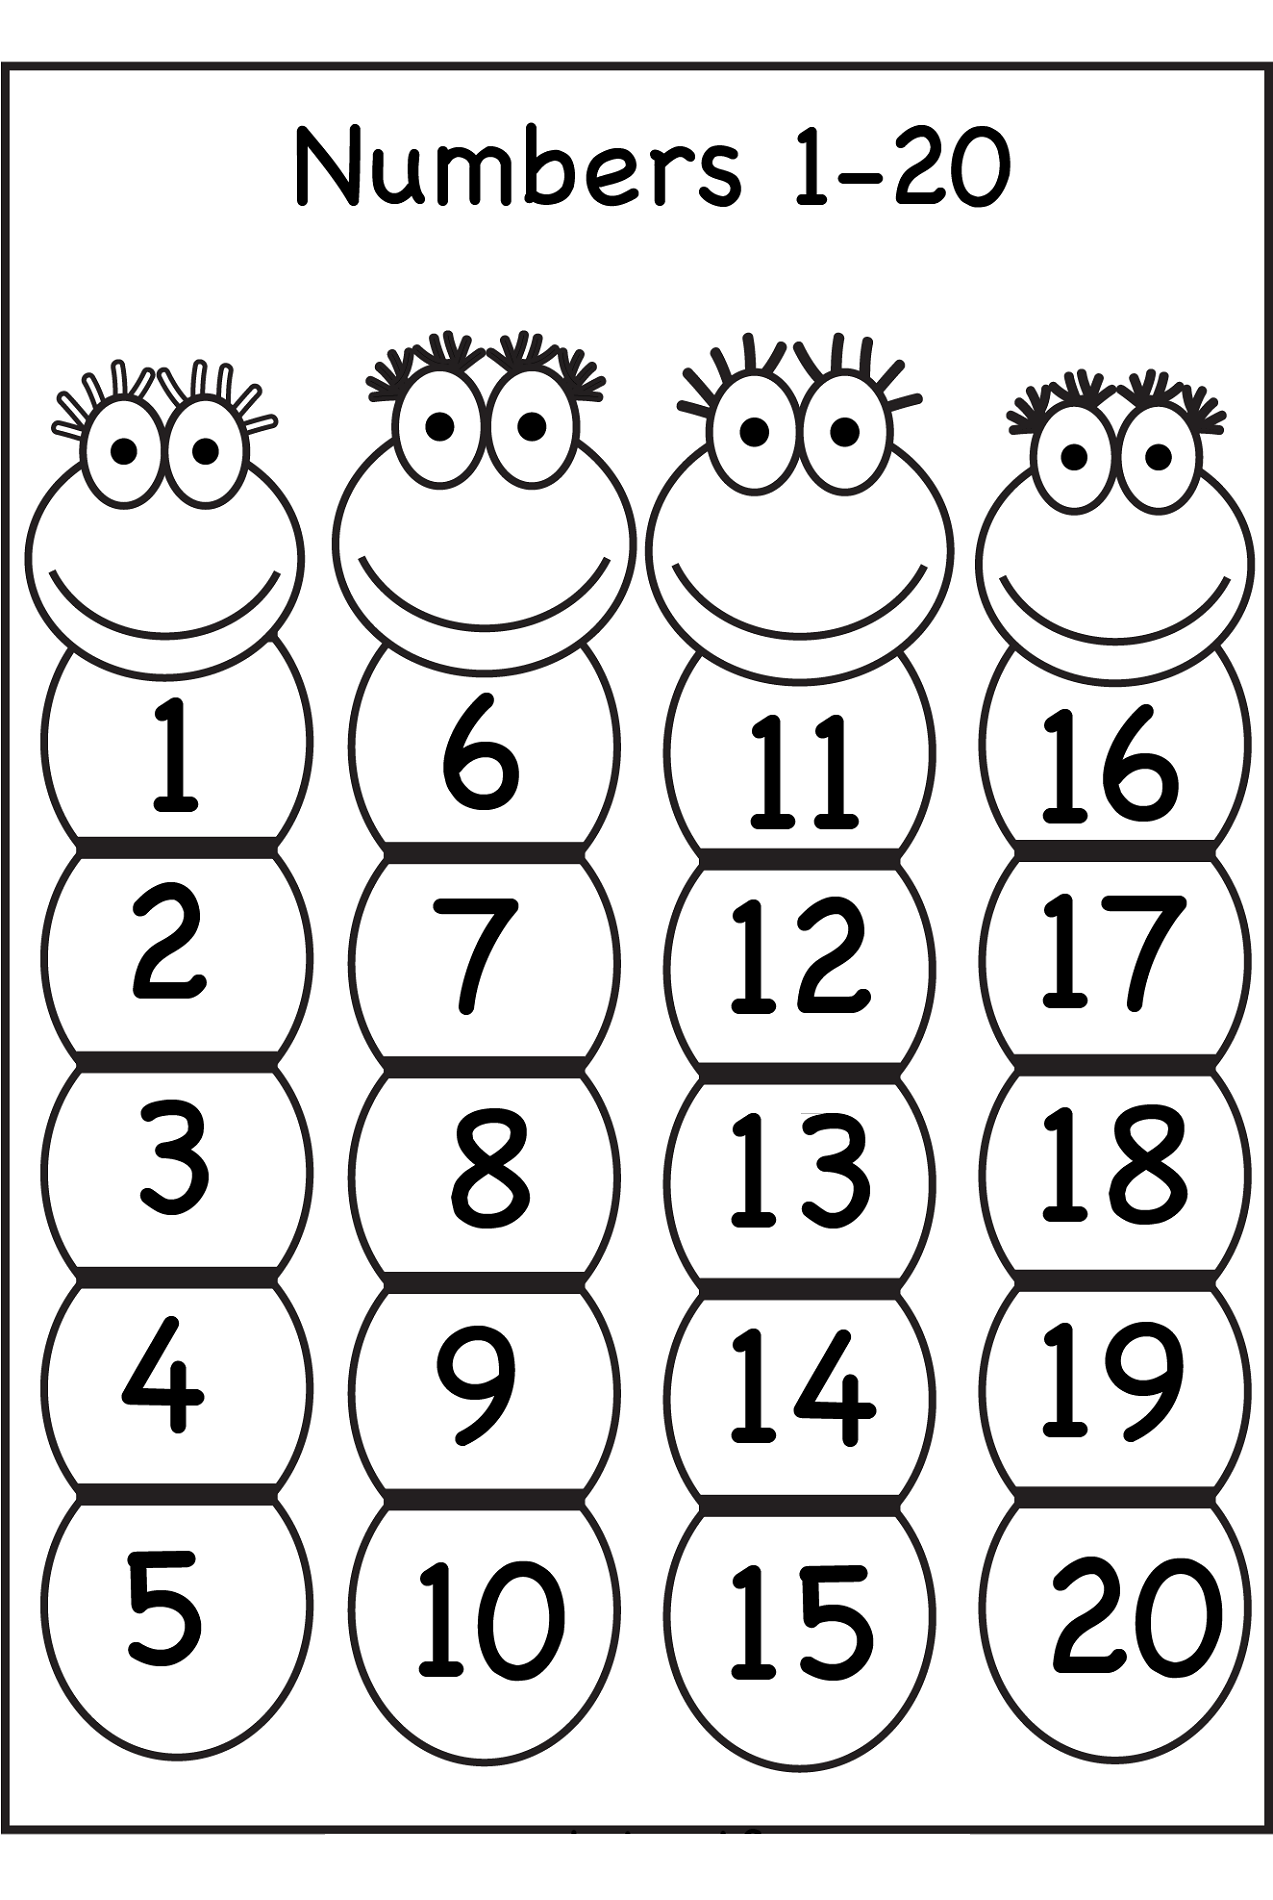 Trace Number 120 Worksheets – Numbers 1-20 Worksheets for Kindergarten